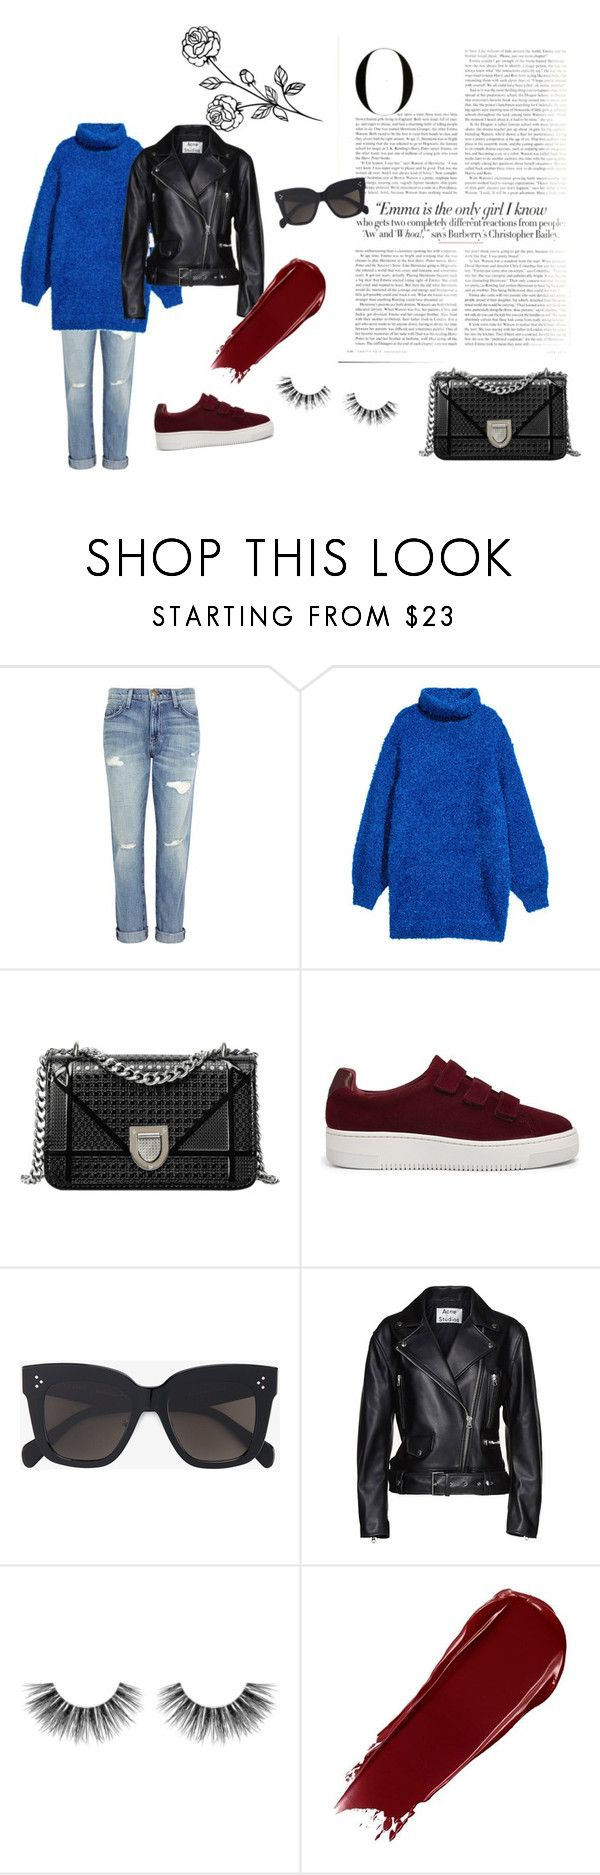 """Blue knit"" by idahedbom on Polyvore featuring Current/Elliott, Vanity Fair, Sandro, CÉLINE, Acne Studios and Velour Lashes"